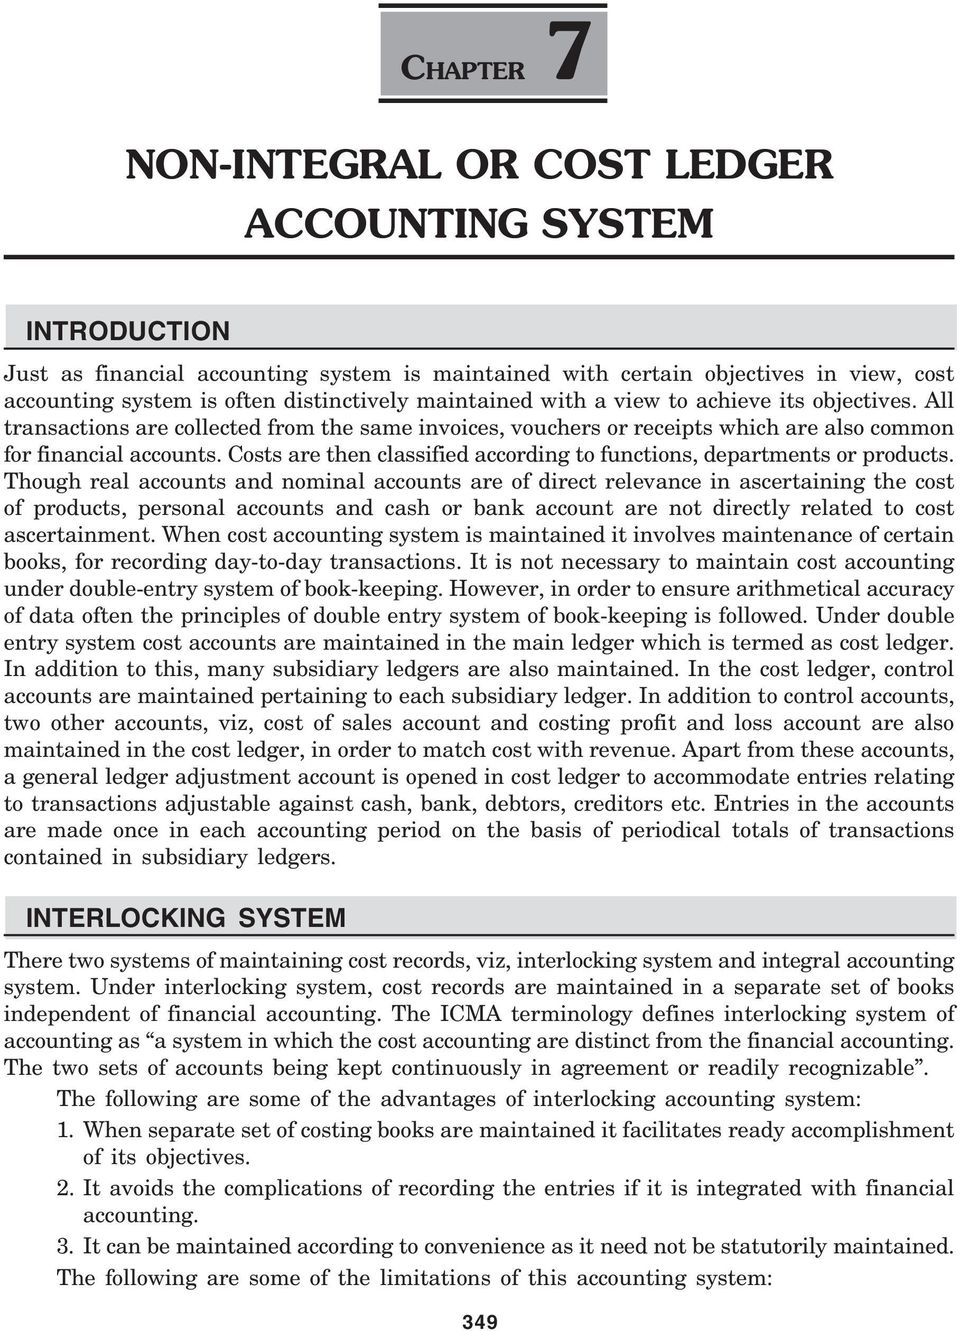 non integral or cost ledger accounting system pdf